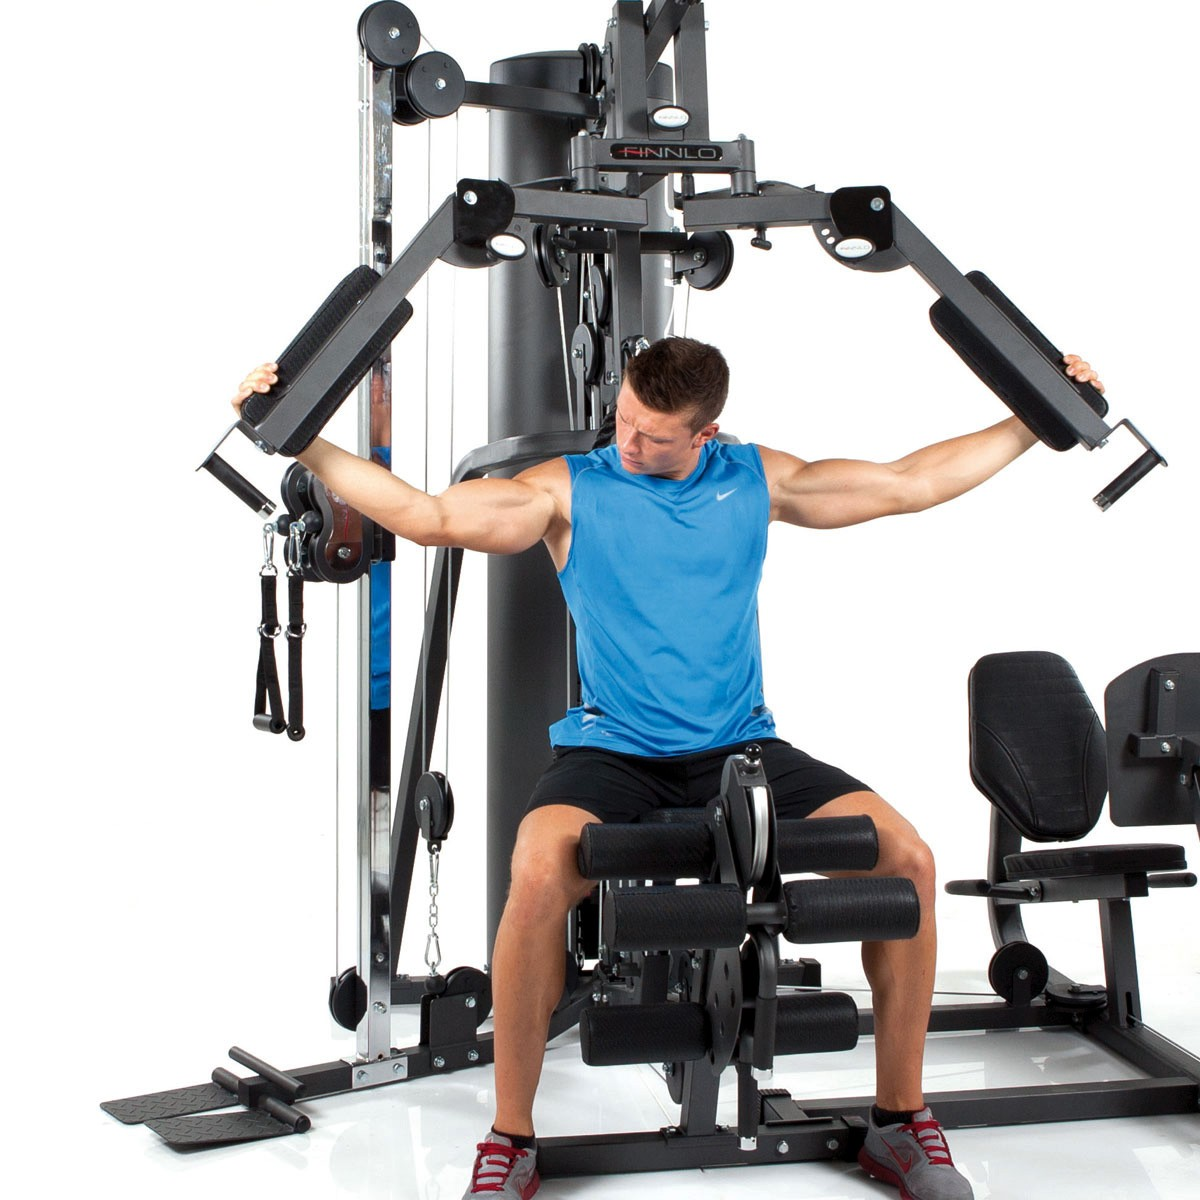 Strength Training: Buy Cheap FINNLO Strength-training Station Autark 2500